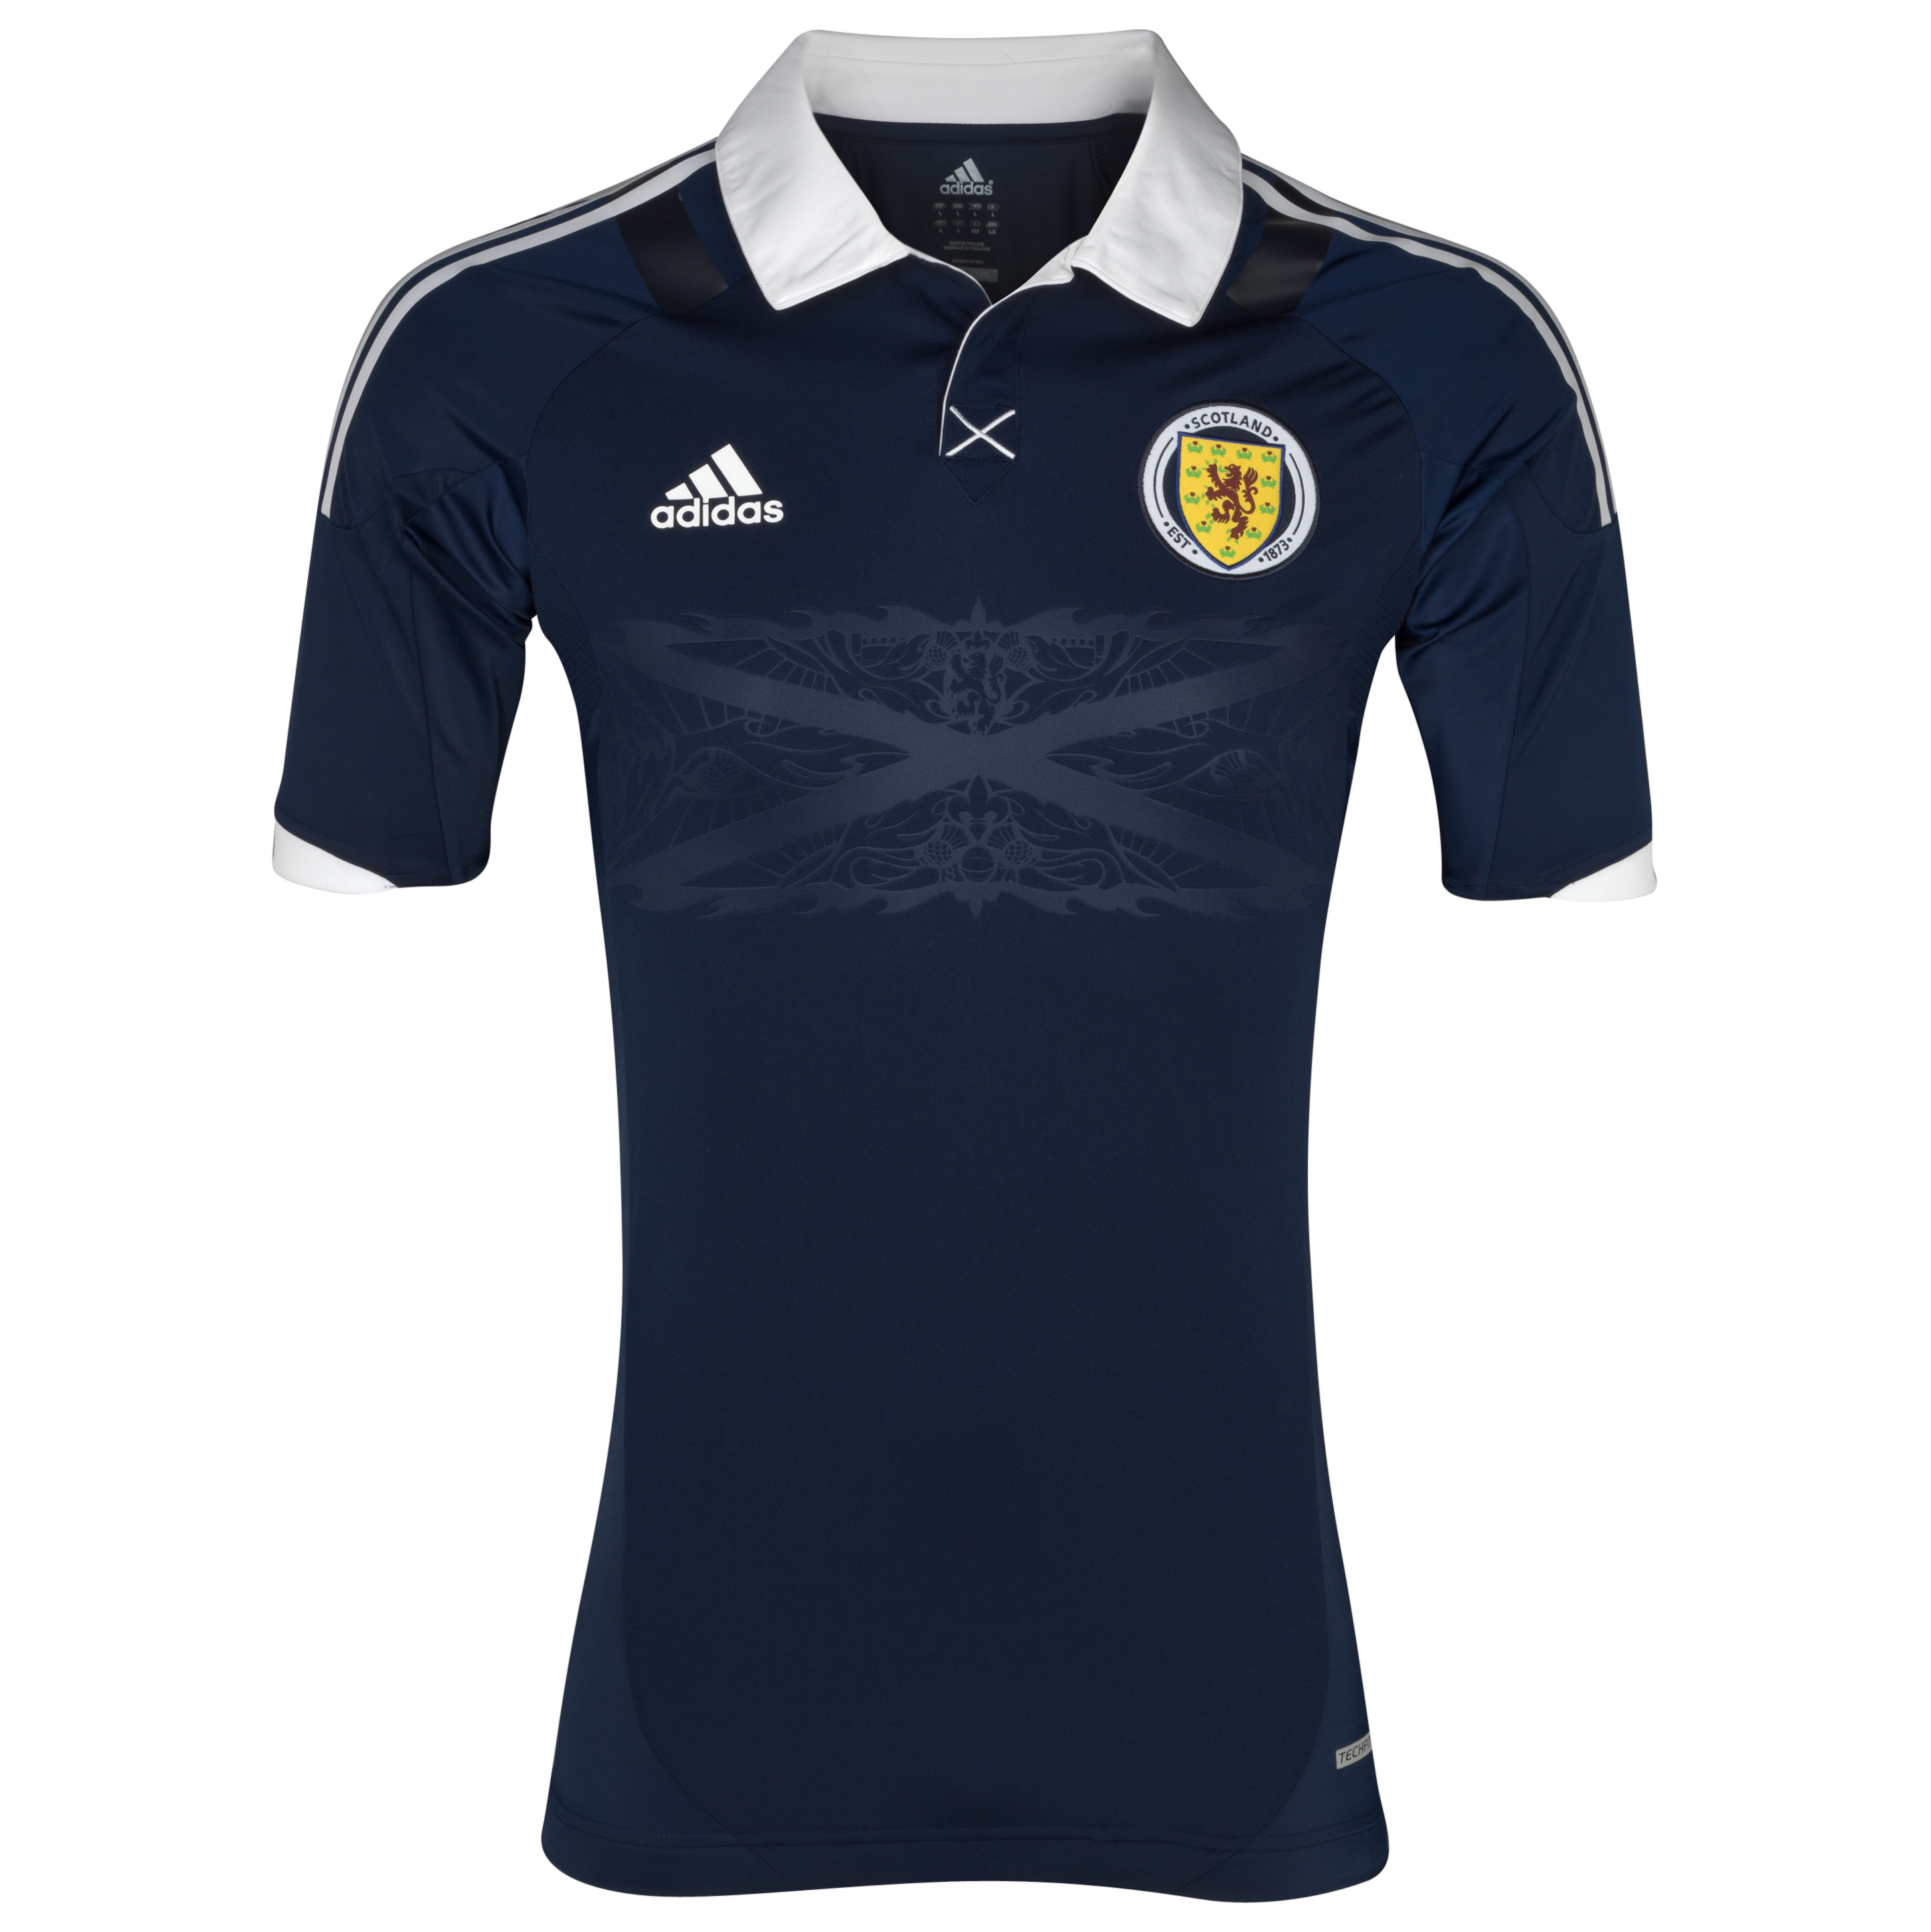 Scotland Authentic Home Shirt 2012/14 - Dark Indigo/White